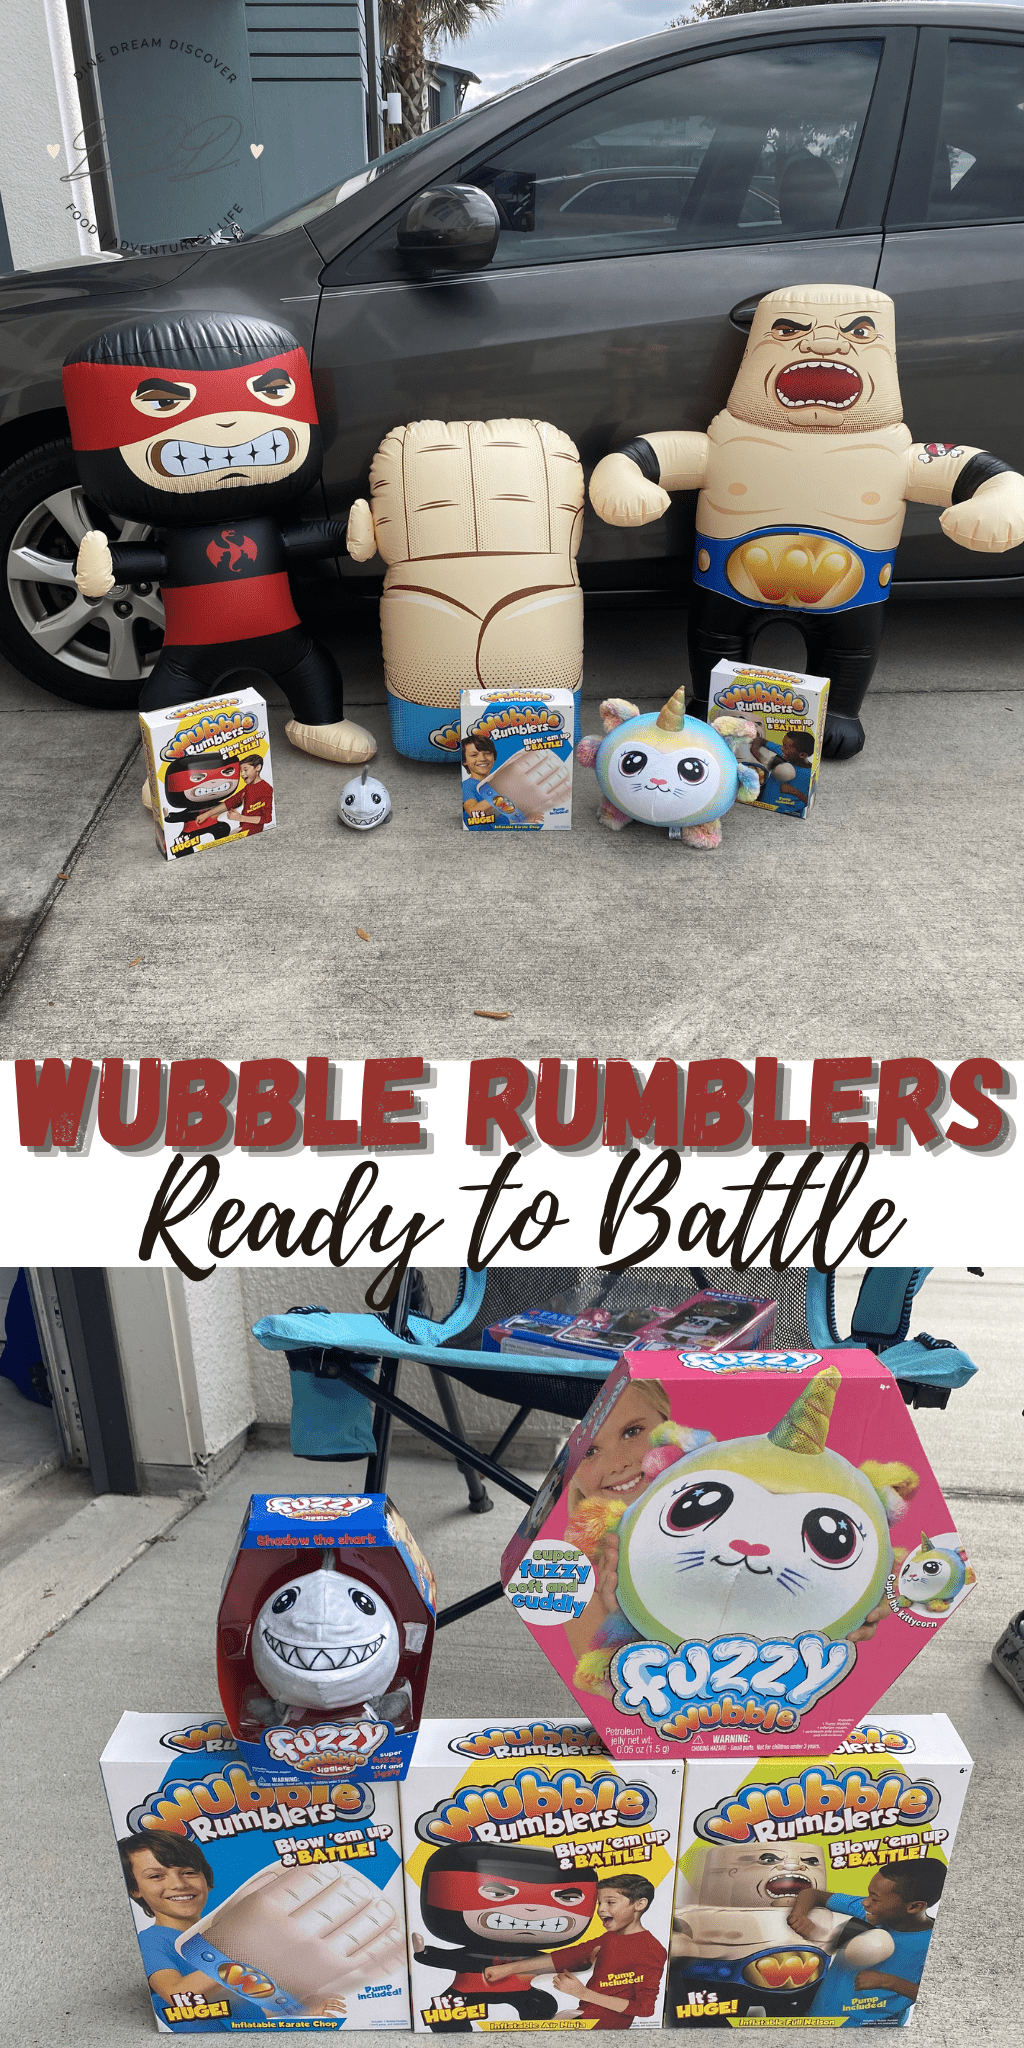 Wubble Rumblers are Ready to Battle